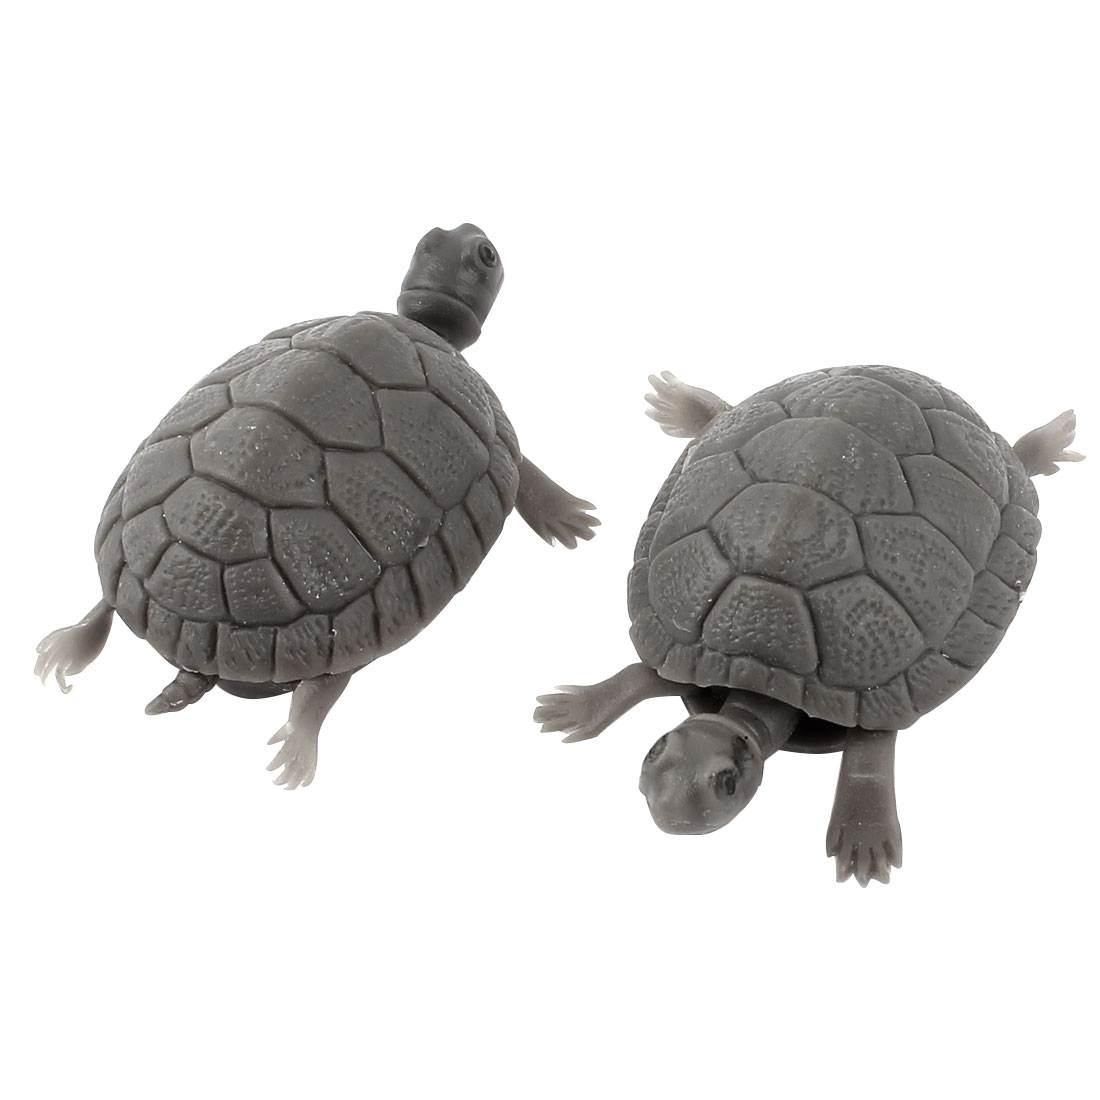 Aquarium Fish Tank Plastic Simulated Tortoise Decorative Ornament Decor 2pcs